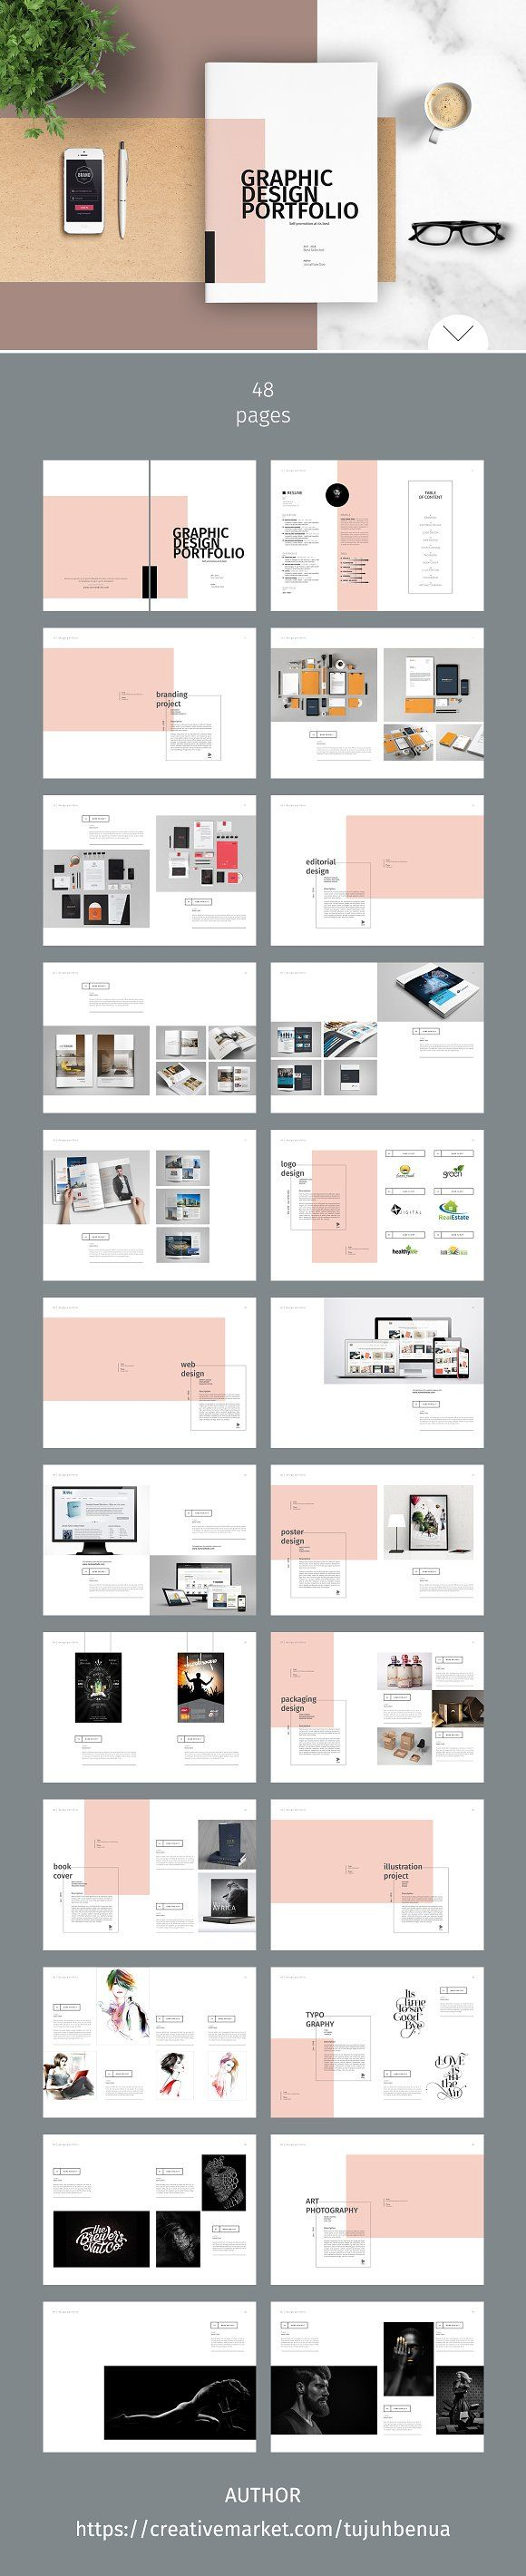 Ideas For Graphic Design Projects eraser pib graphic design project ideas for portfolio Graphic Design Portfolio Template